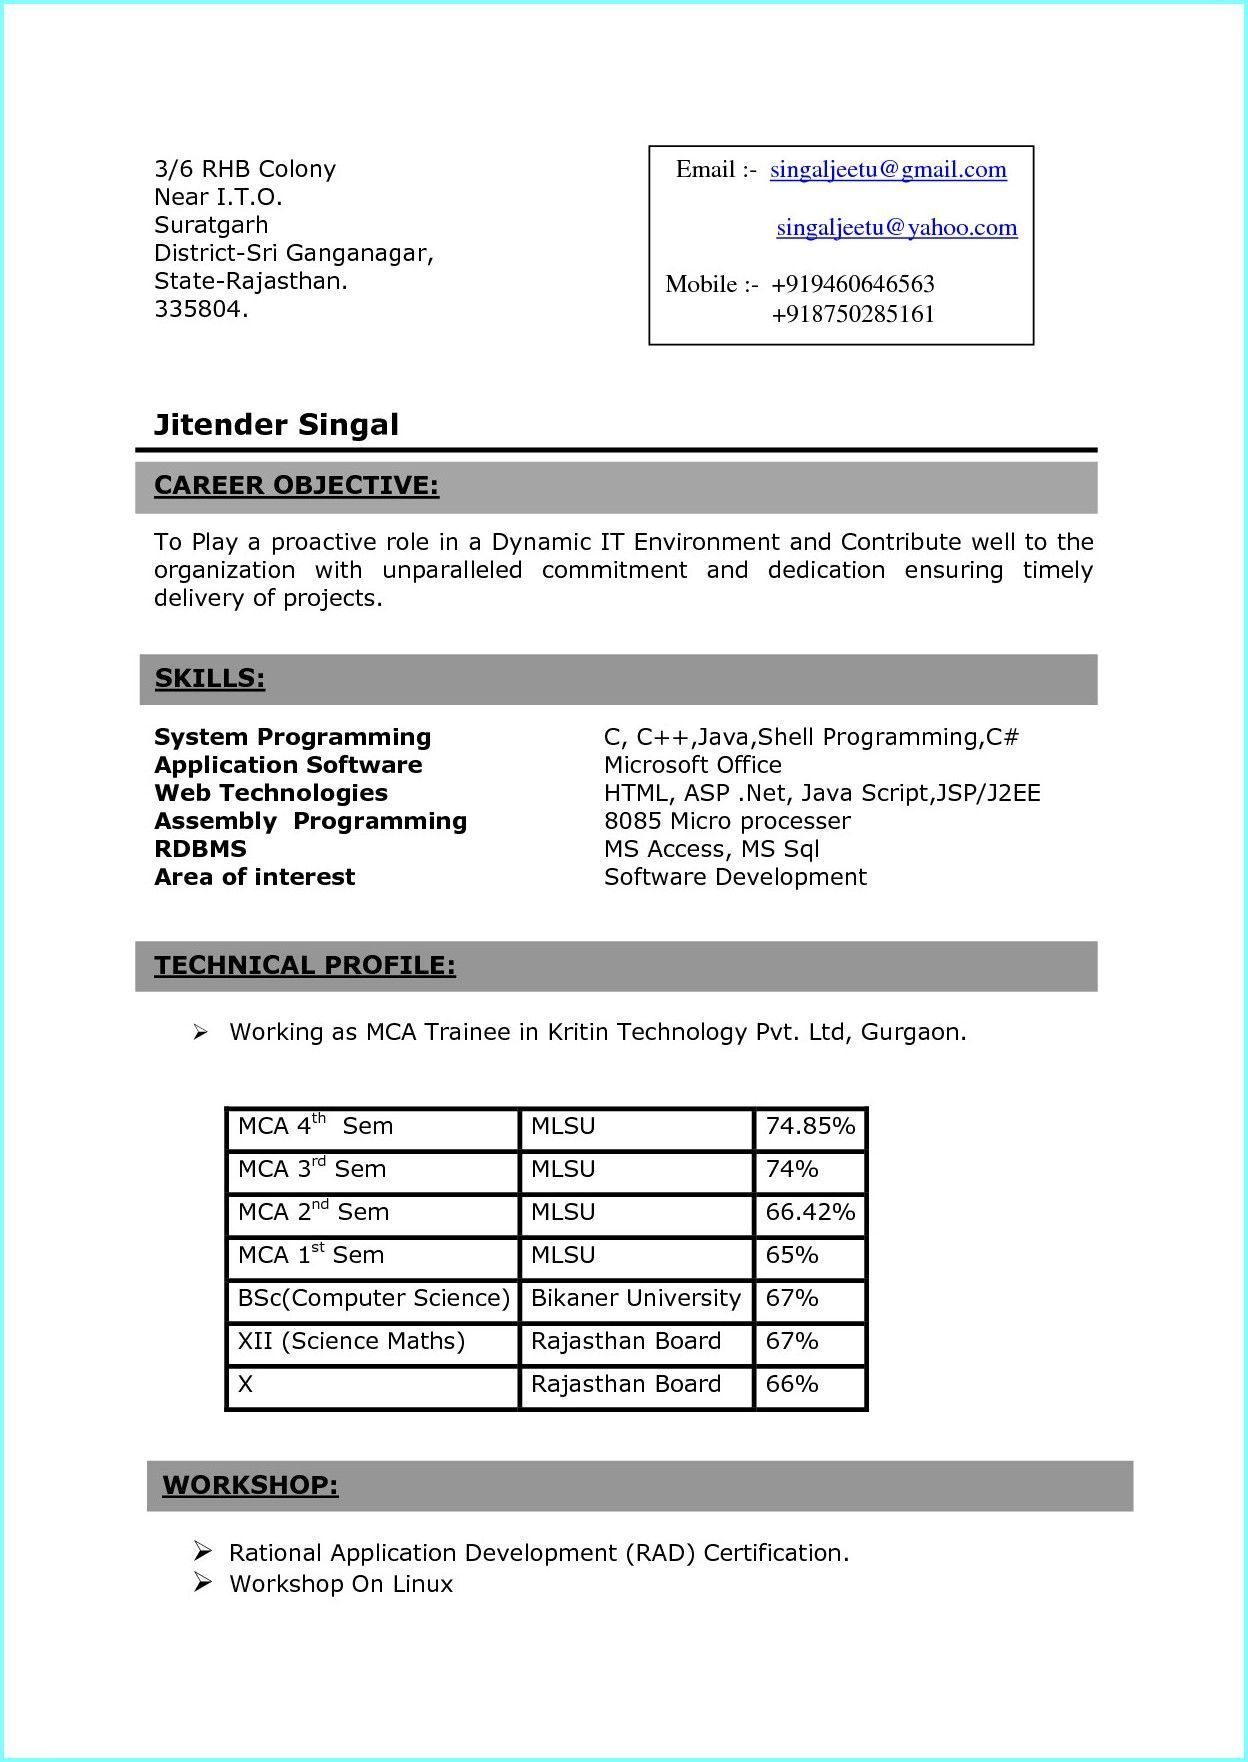 resume format in ms word for fresher mca students nurses of bsc objective marketing Resume Resume Format For Mca Students